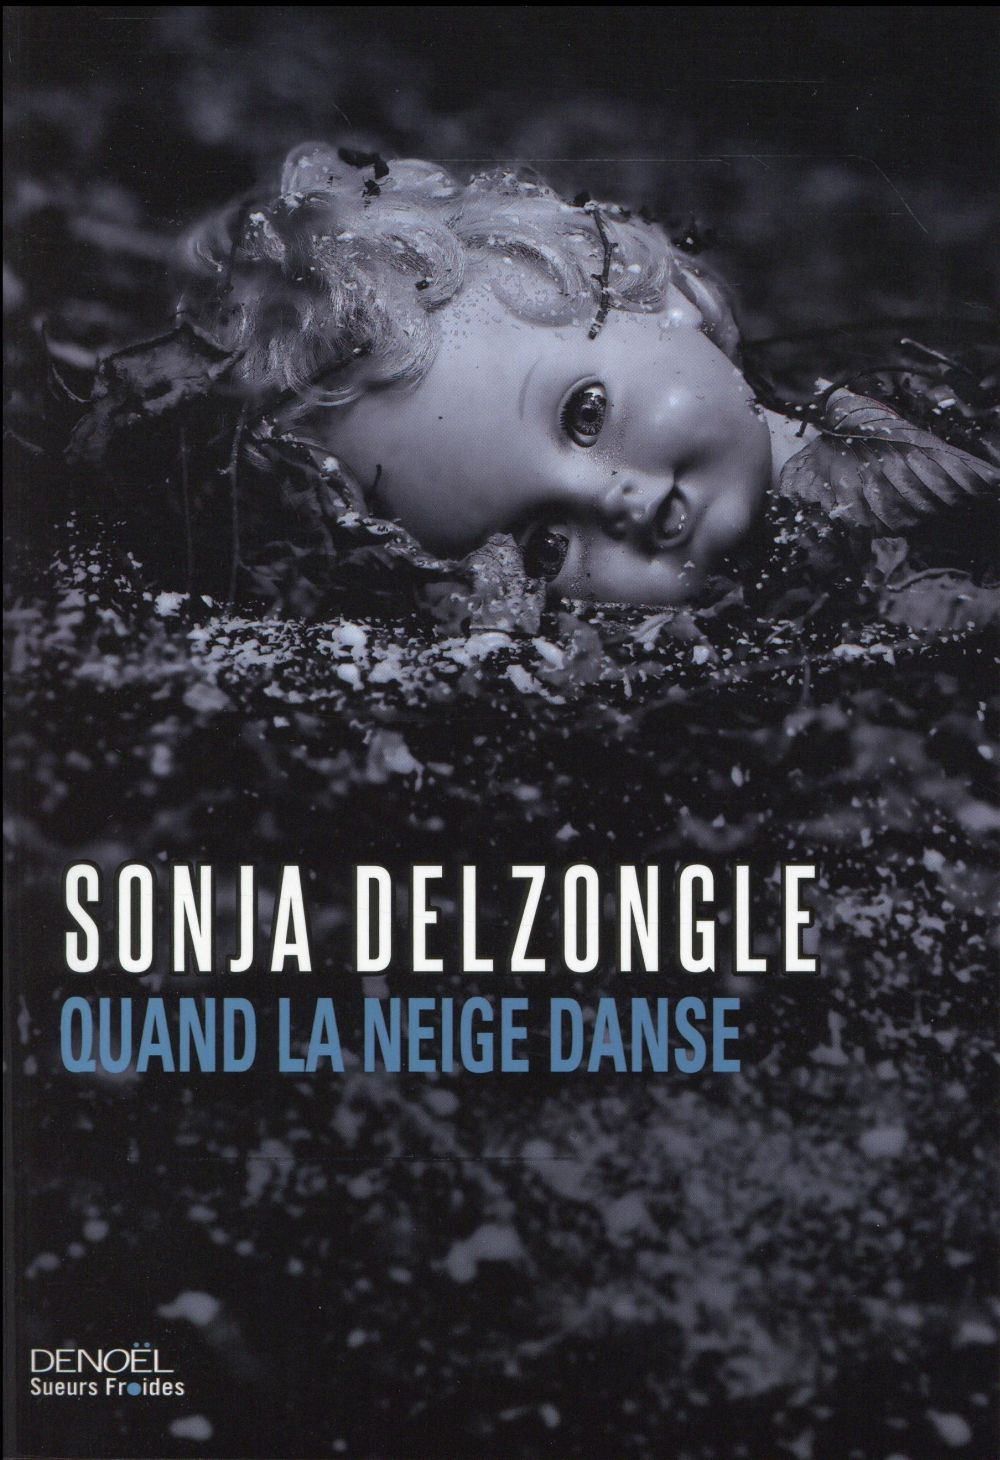 Delzongle Sonia - QUAND LA NEIGE DANSE